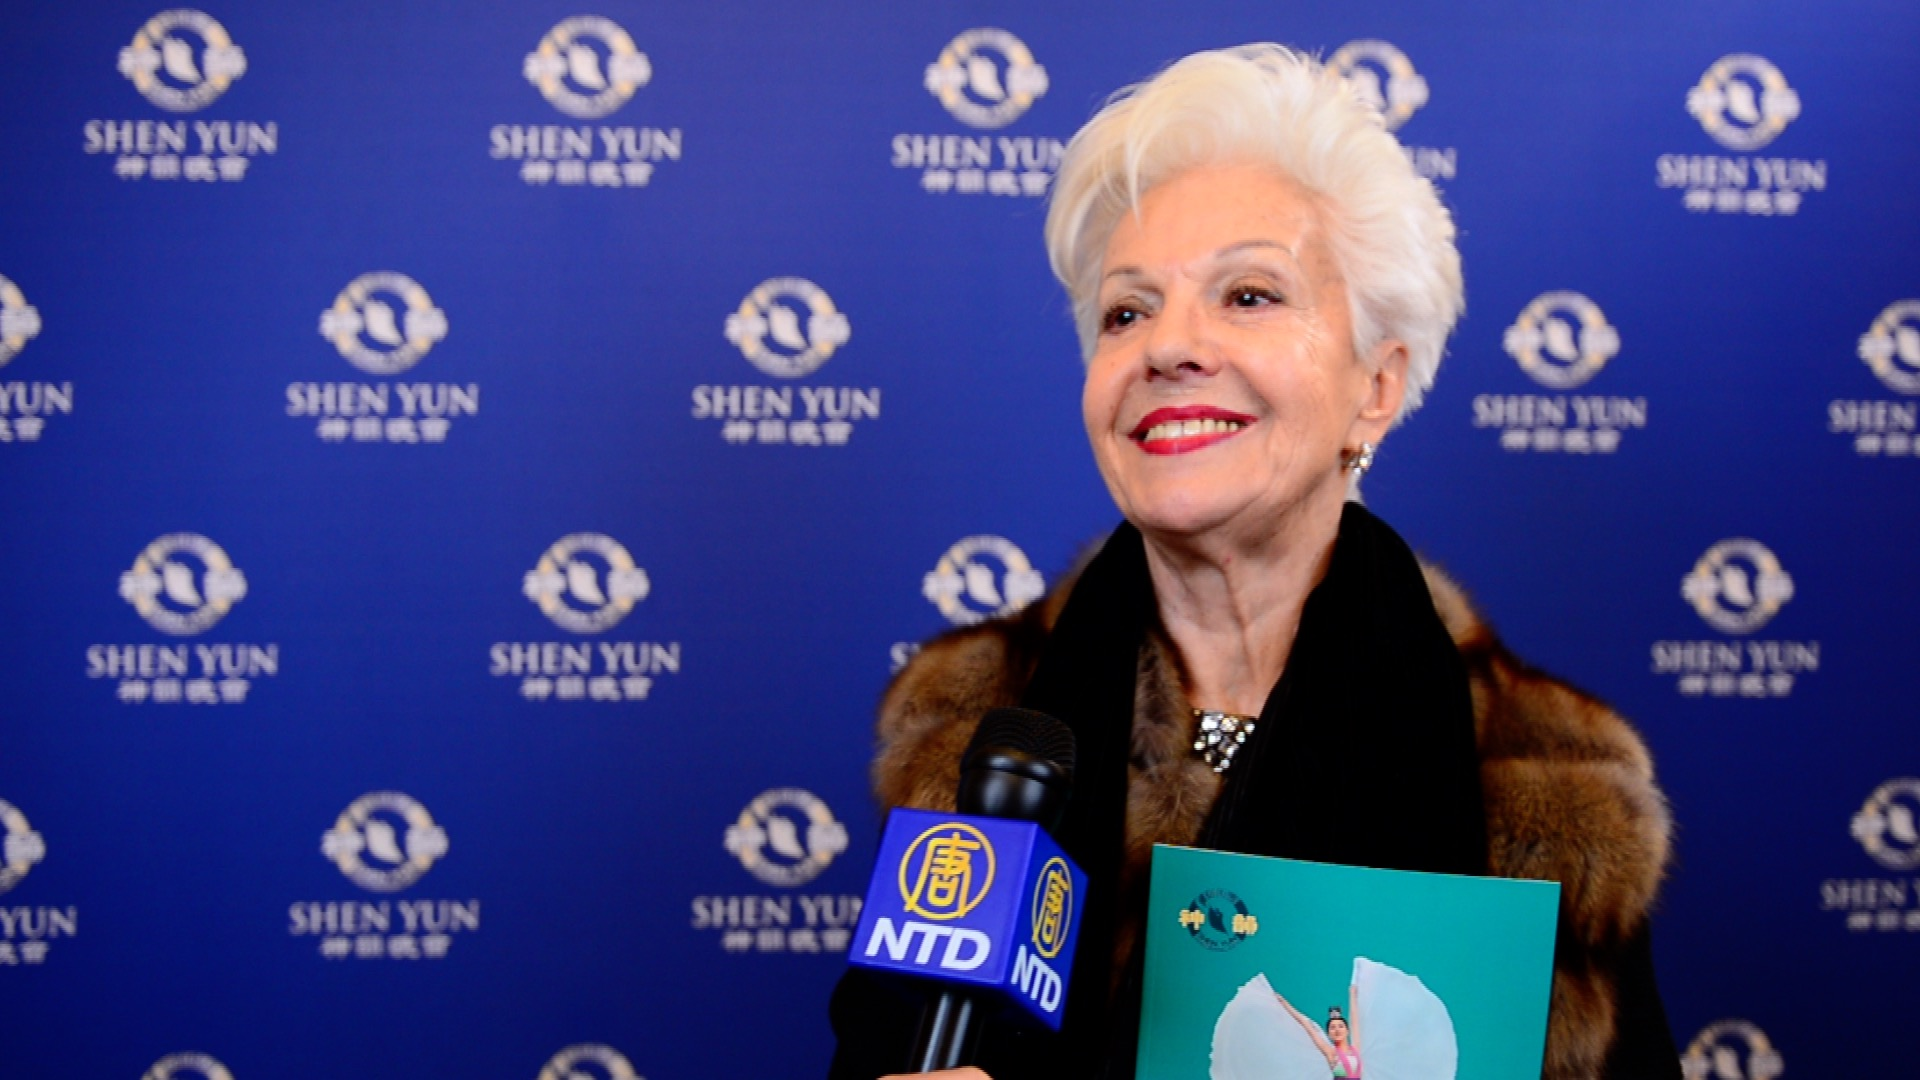 Shen Yun a 'Magical World of Color, Harmony, and Perfection'